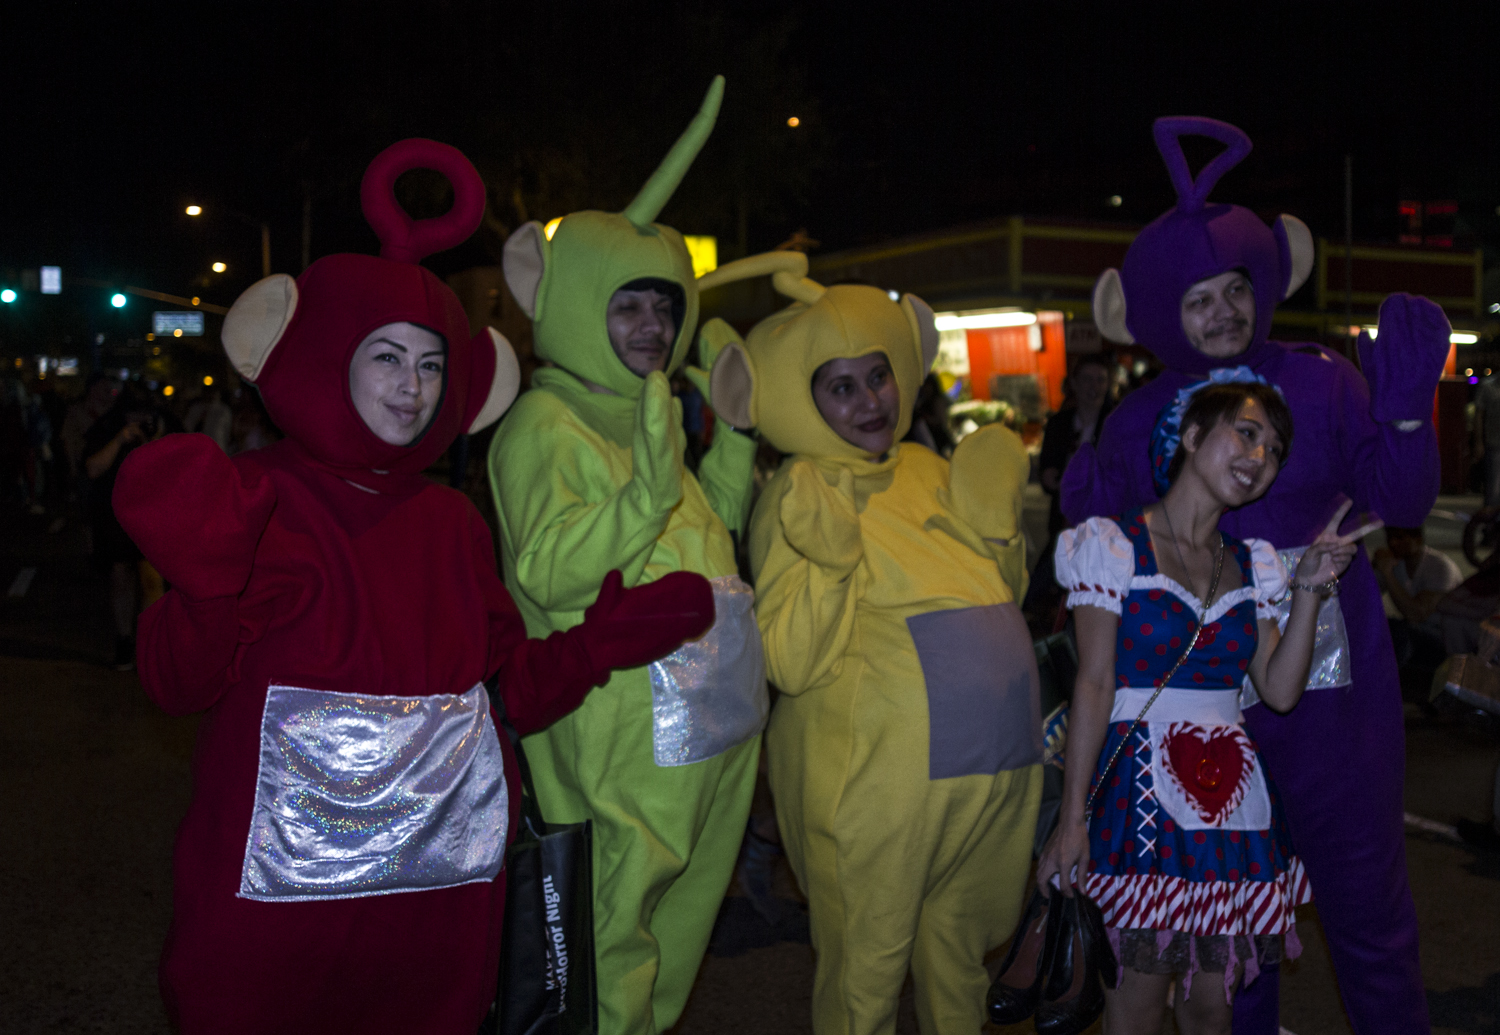 Even the Teletubbies were there!